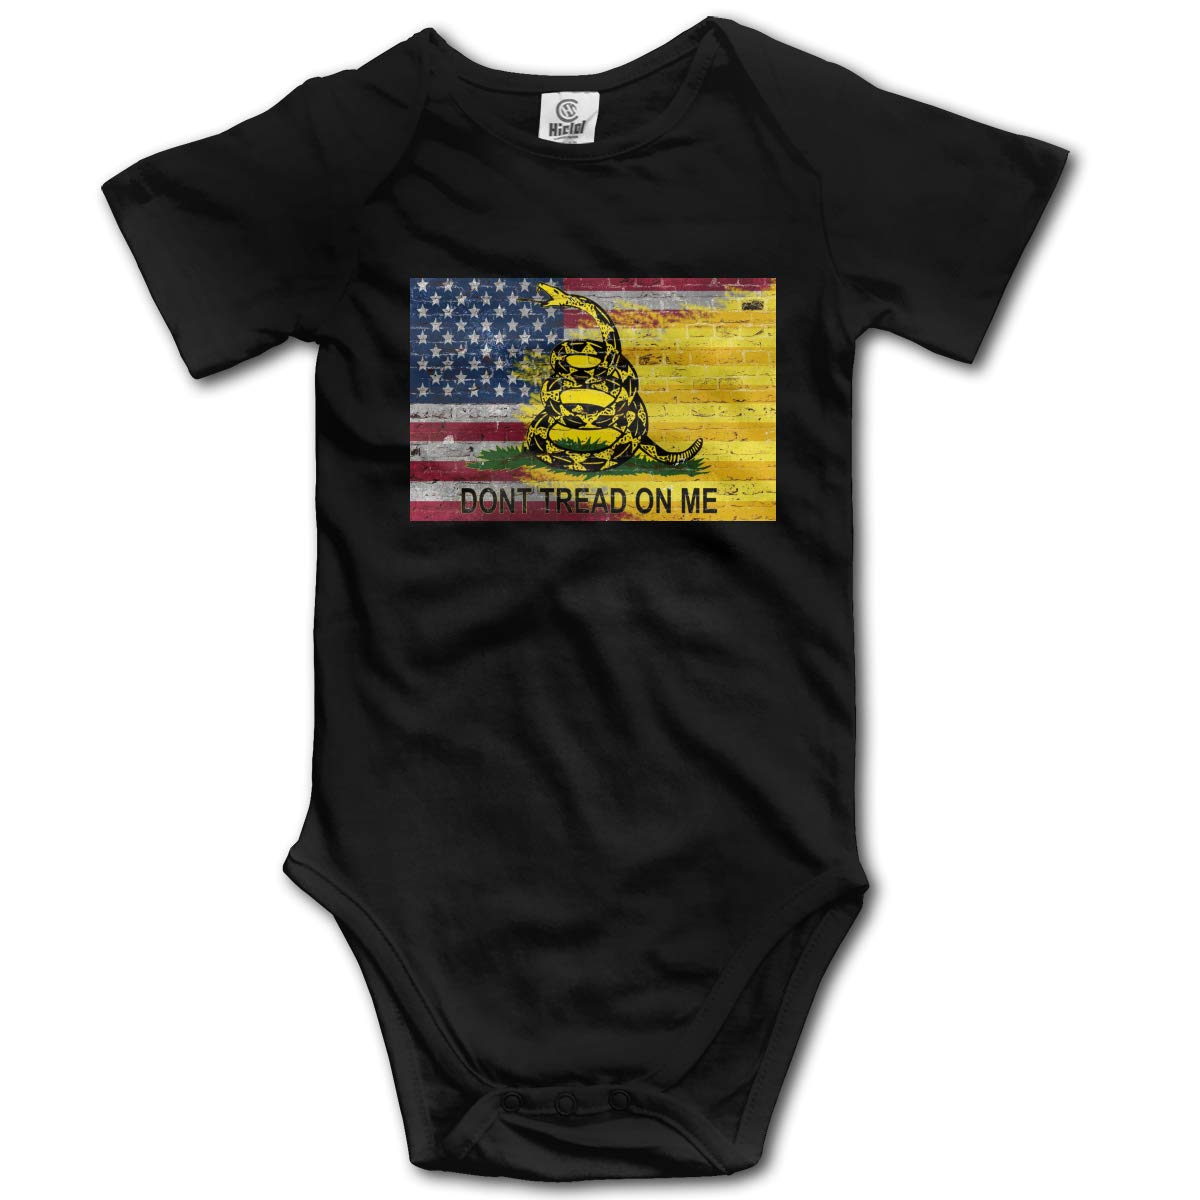 Dont Tread On Me American Flag Suit 6-24 Months Short Sleeve Baby Clothes Climbing Clothes